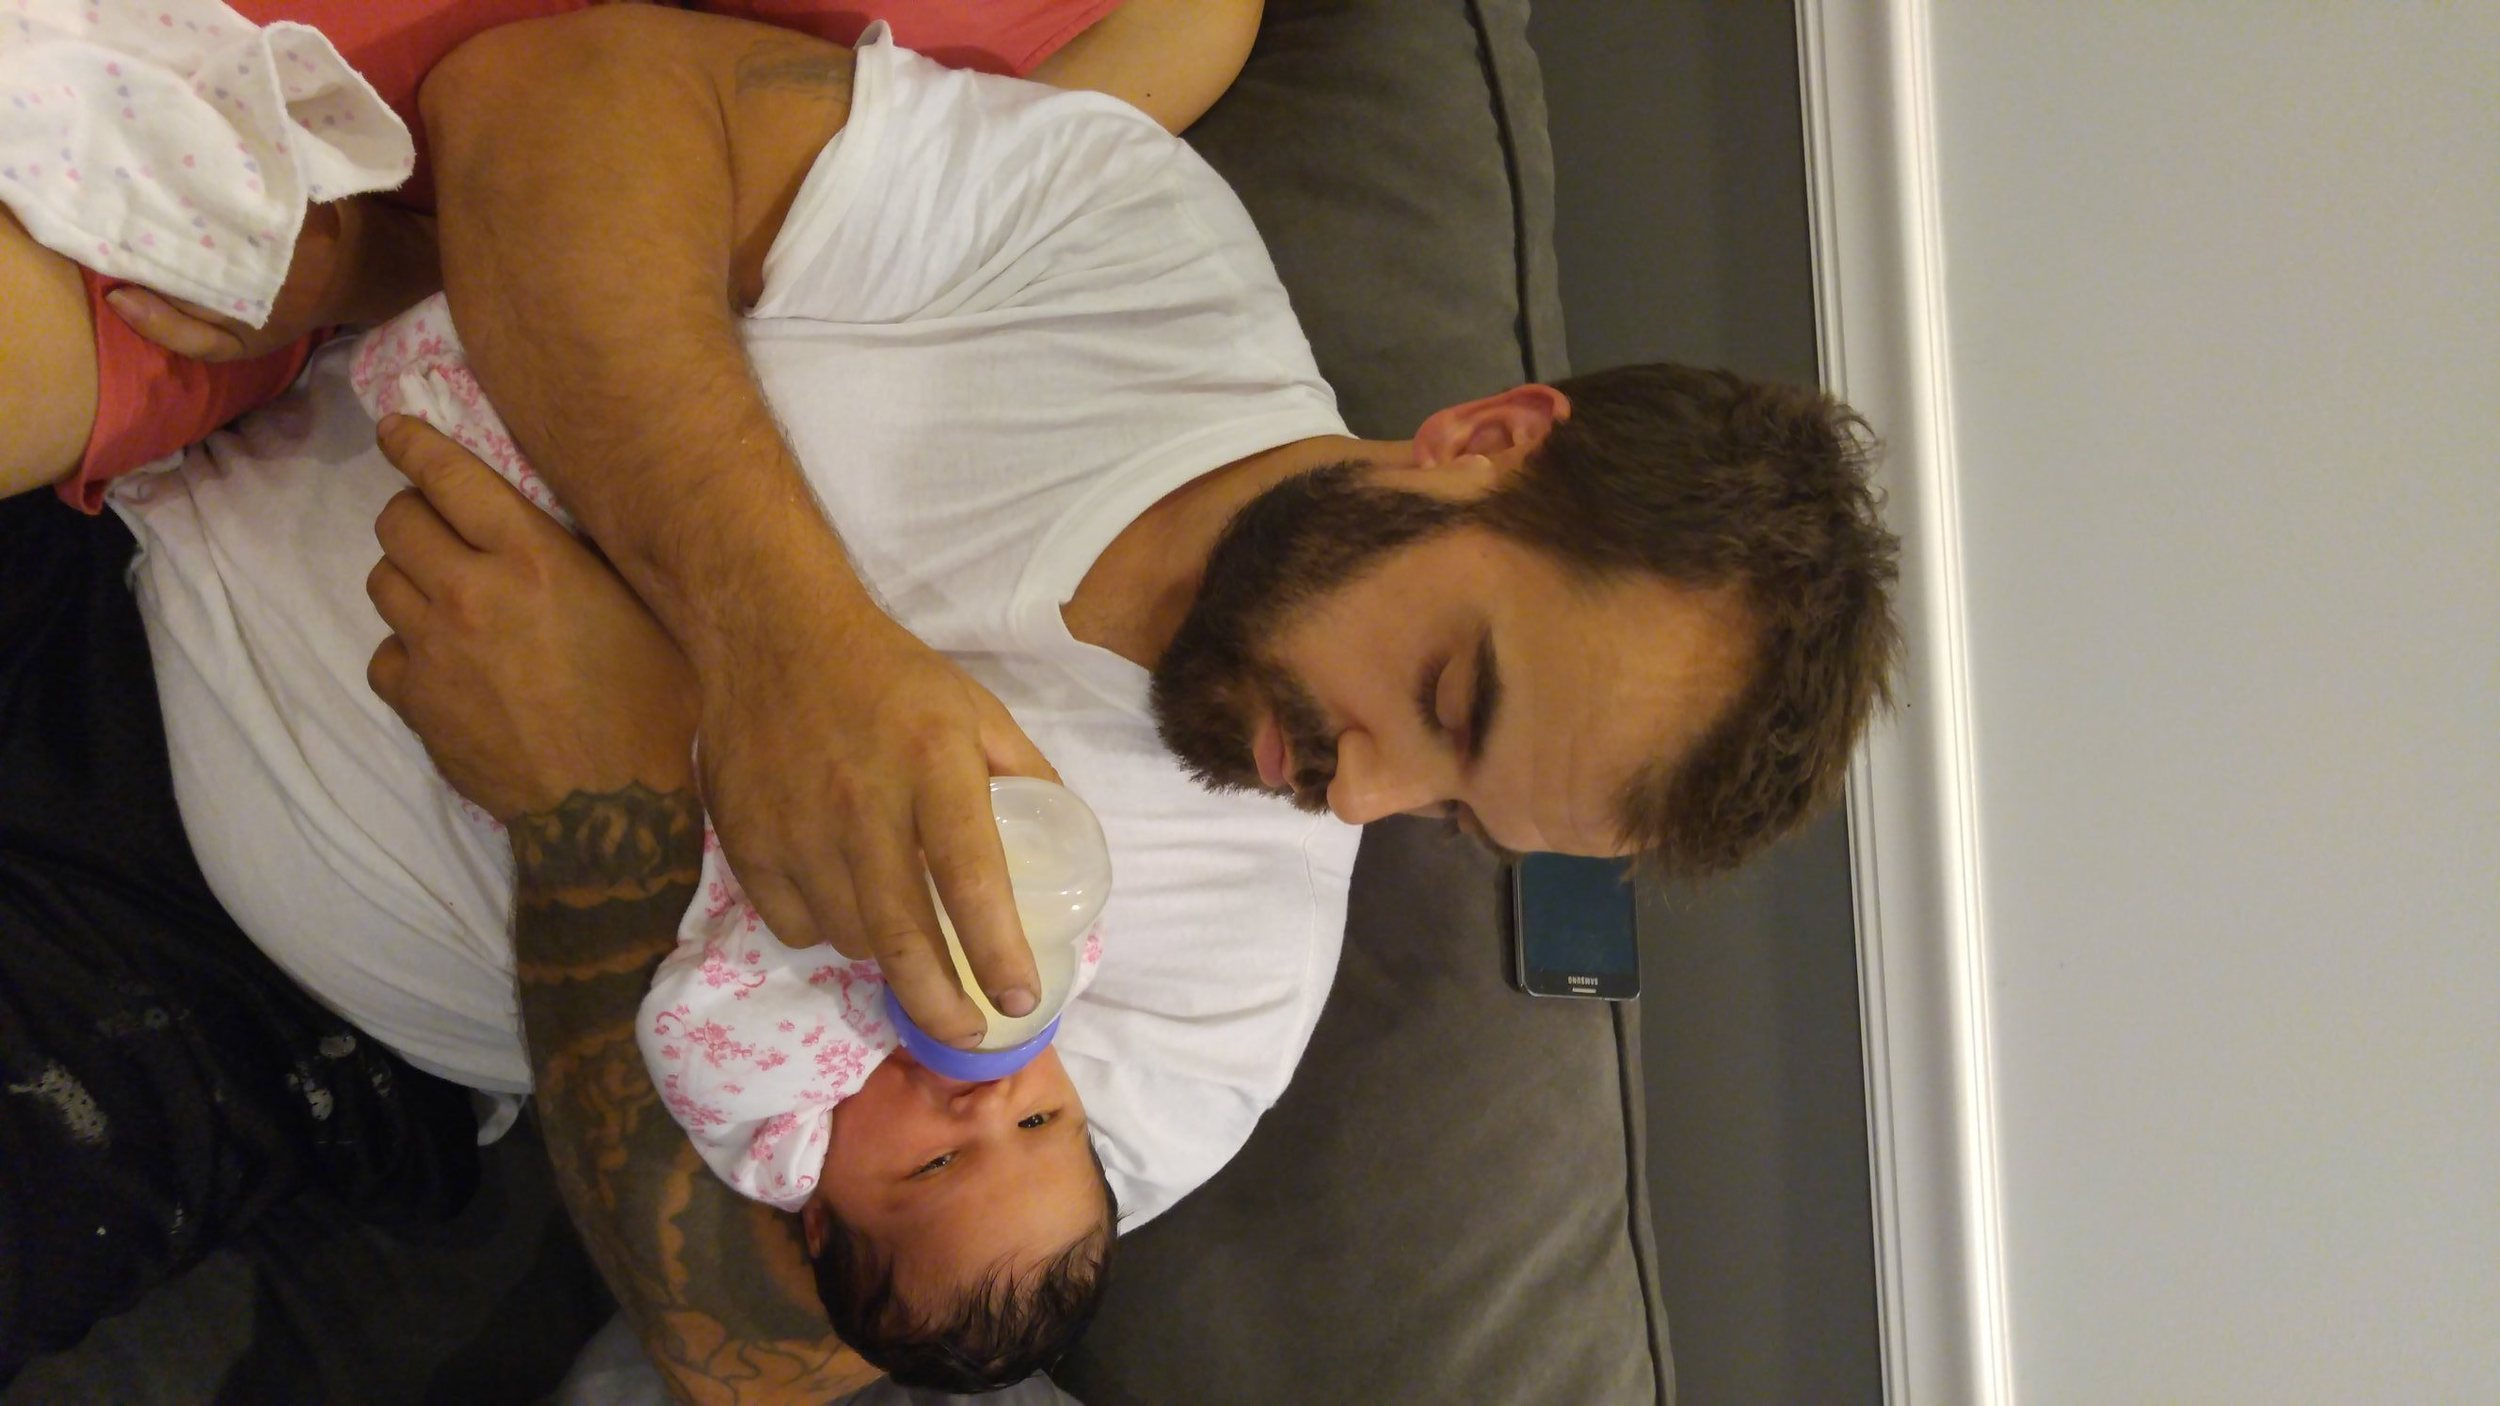 One plus to pumping- Daddy got to feed and bond.